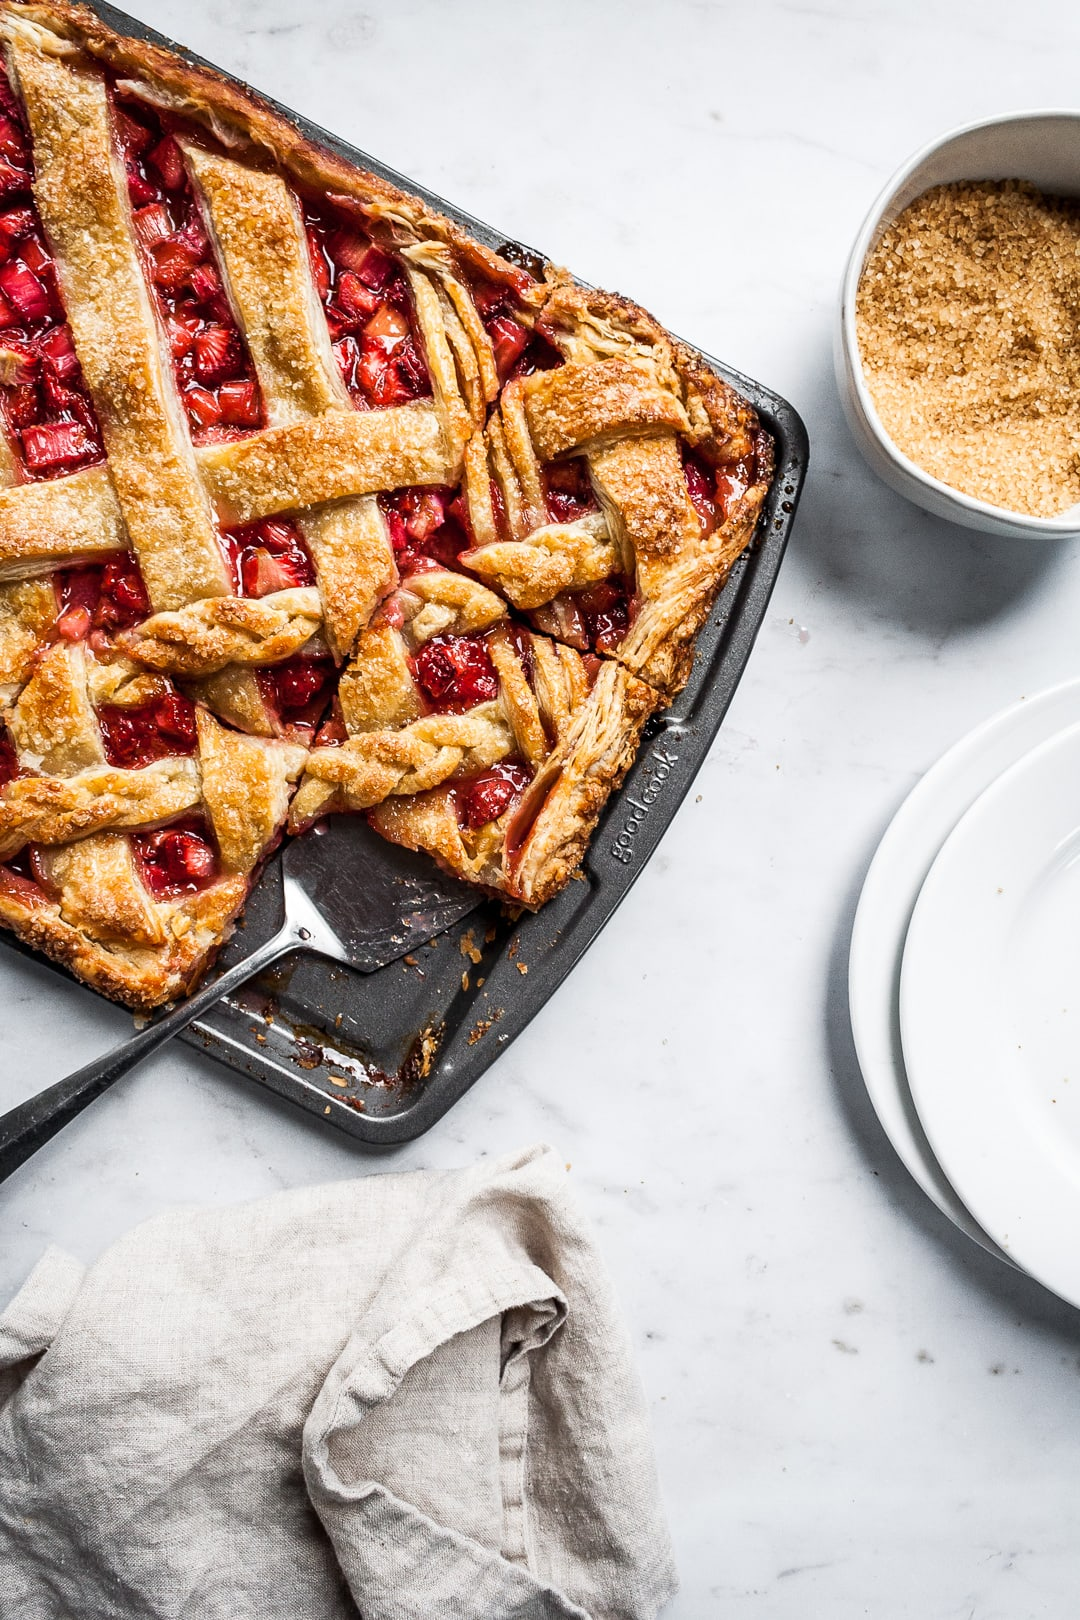 Baked strawberry rhubarb slab pie in a sheet pan with several cut slices and a serving utensil on a marble background